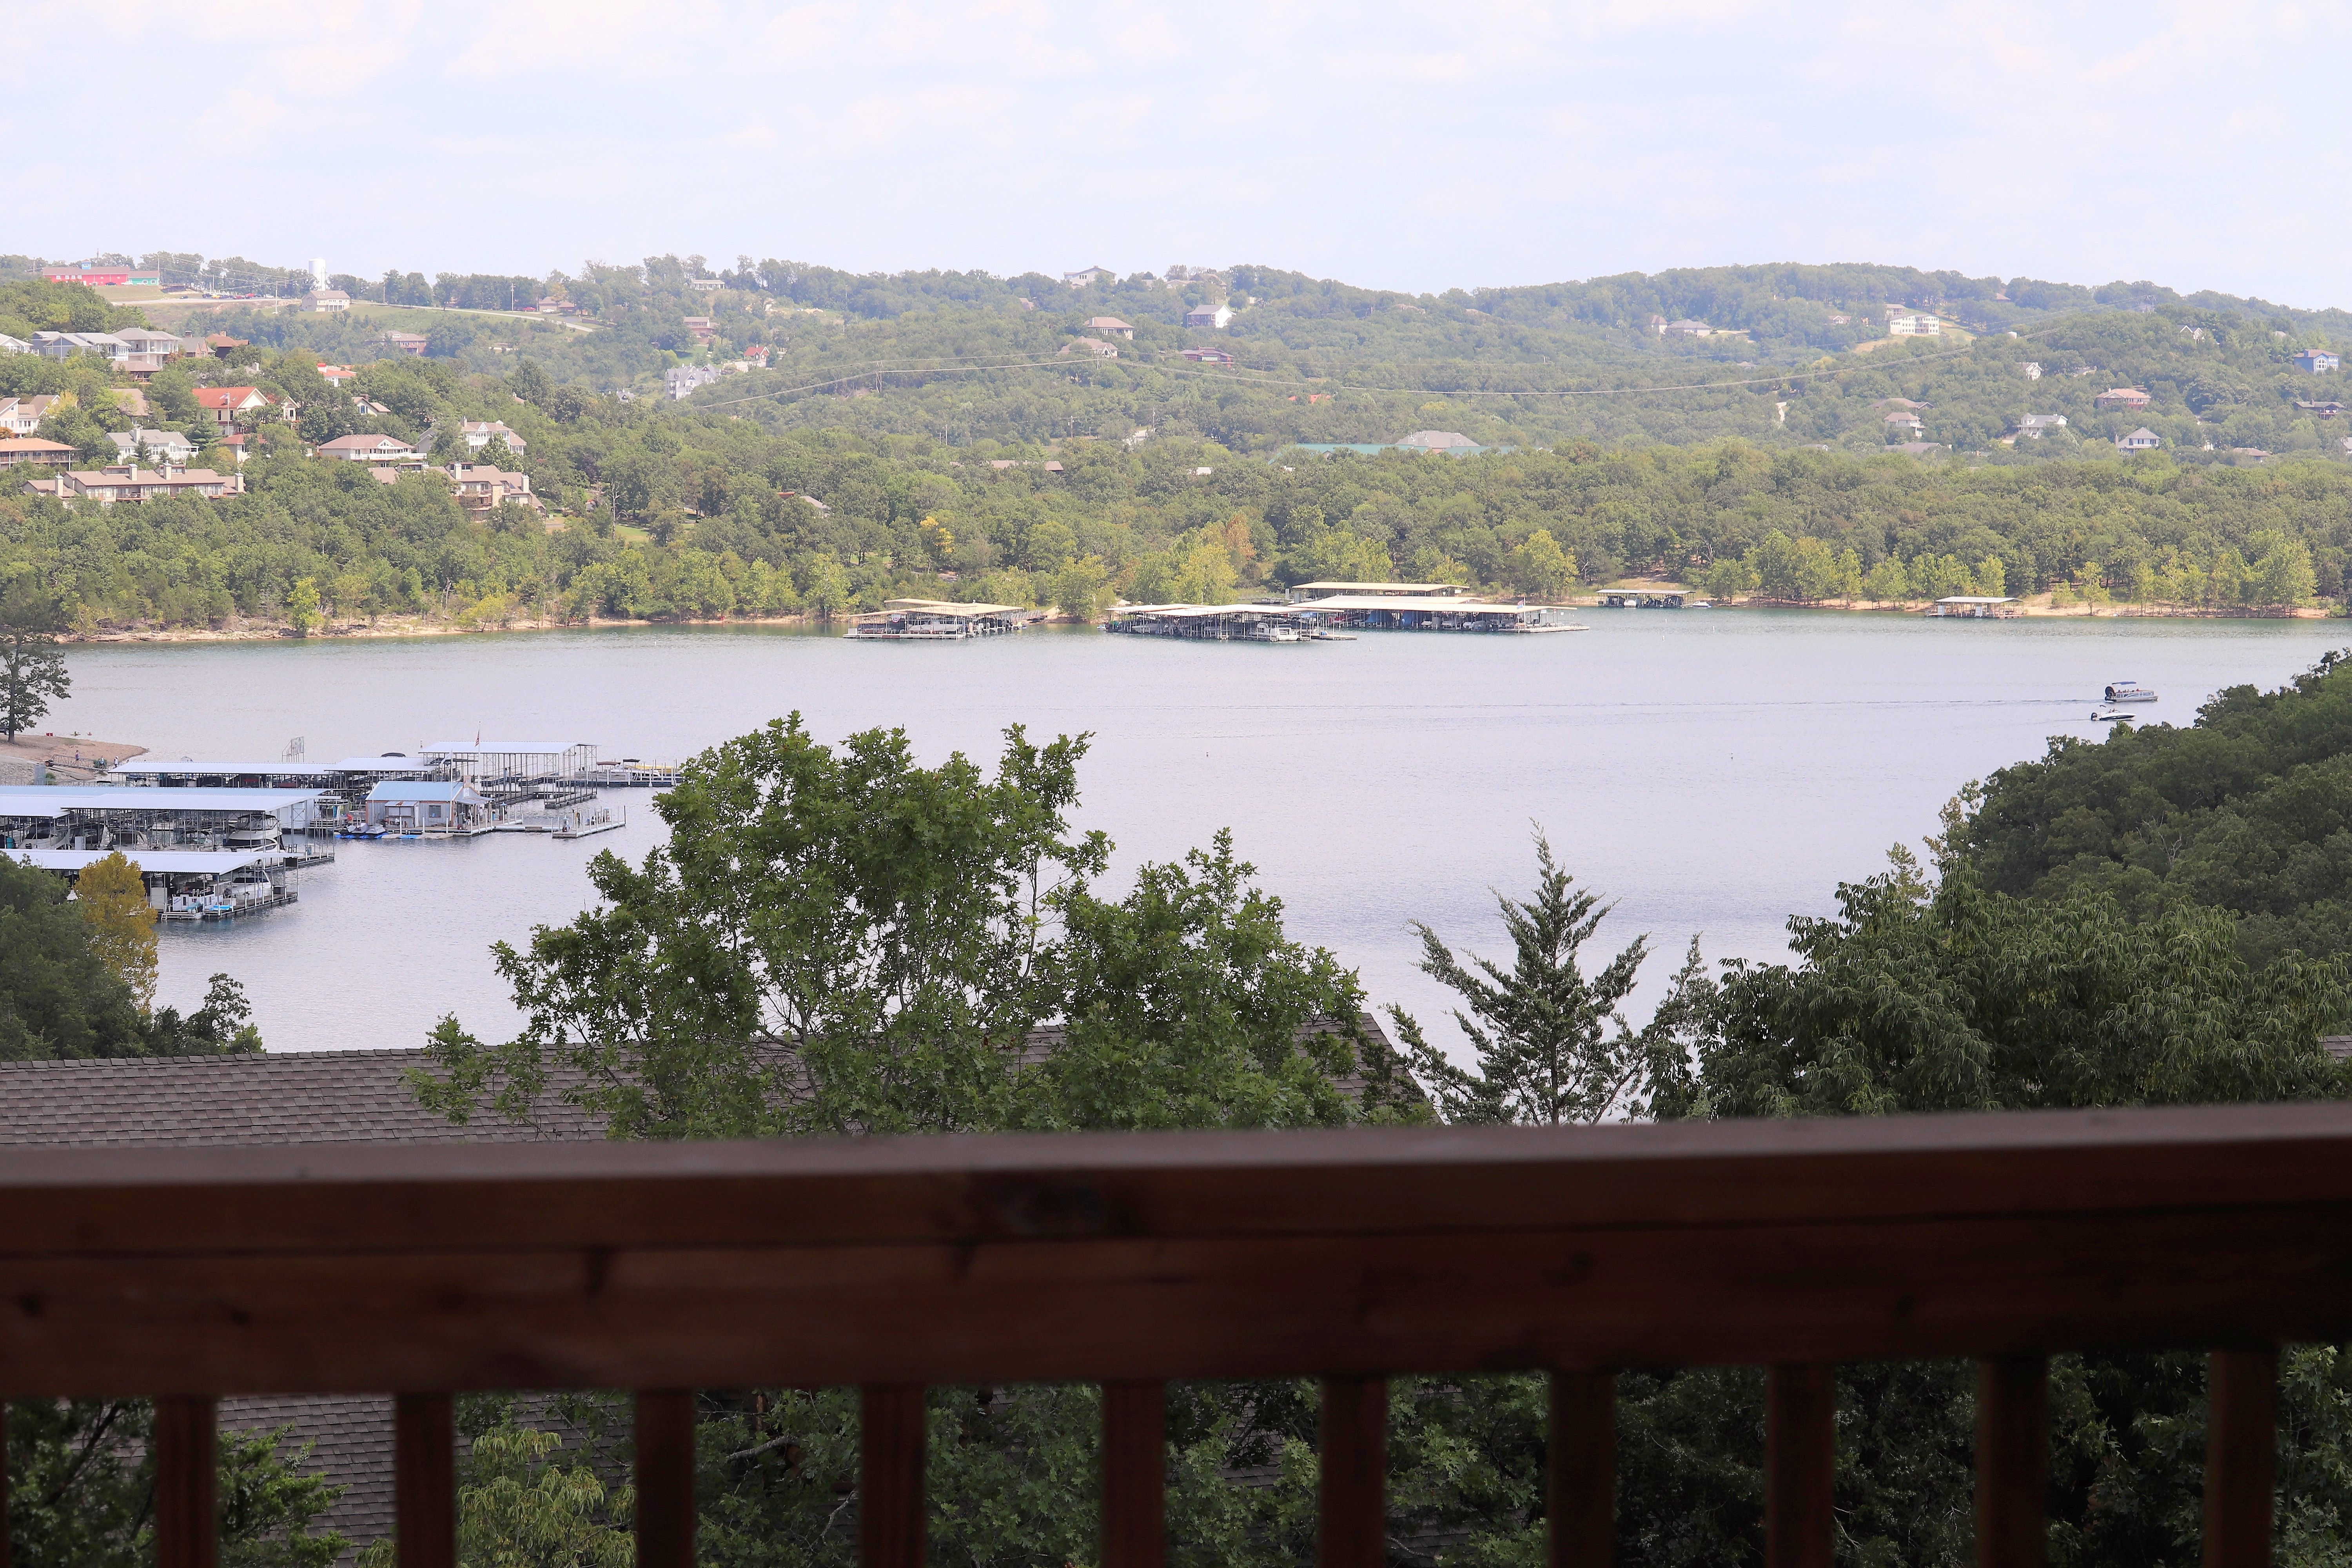 2 Bedrooms / 2 Bathrooms - Est. $1,320.00 / Month* for rent in Branson, MO